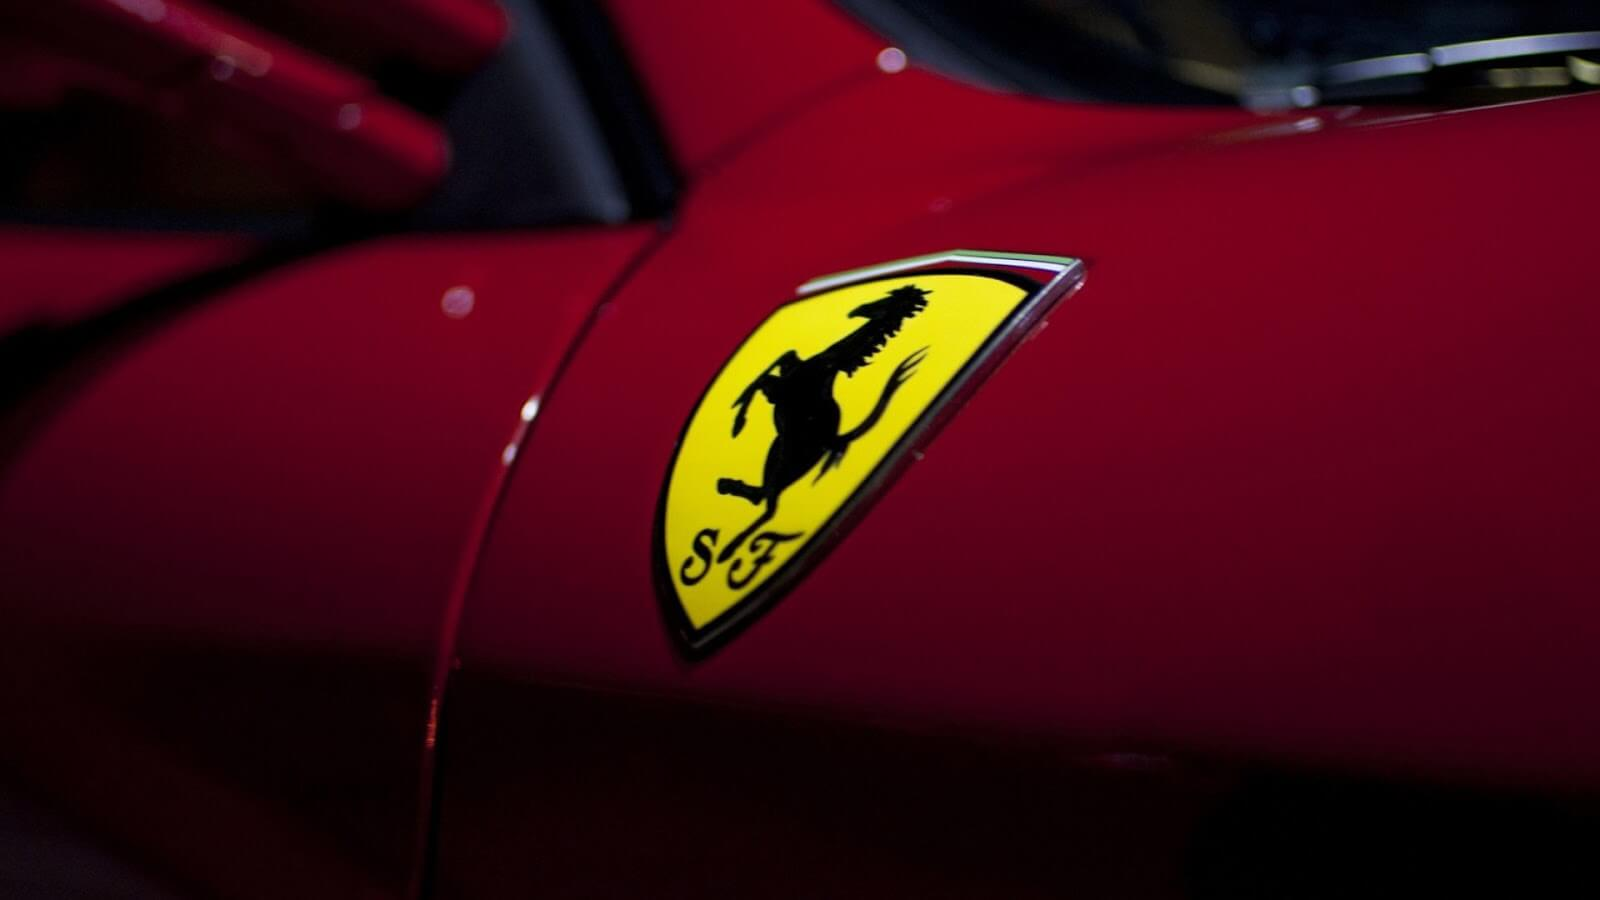 The Successful Story Behind Ferrari Logo EALUXE